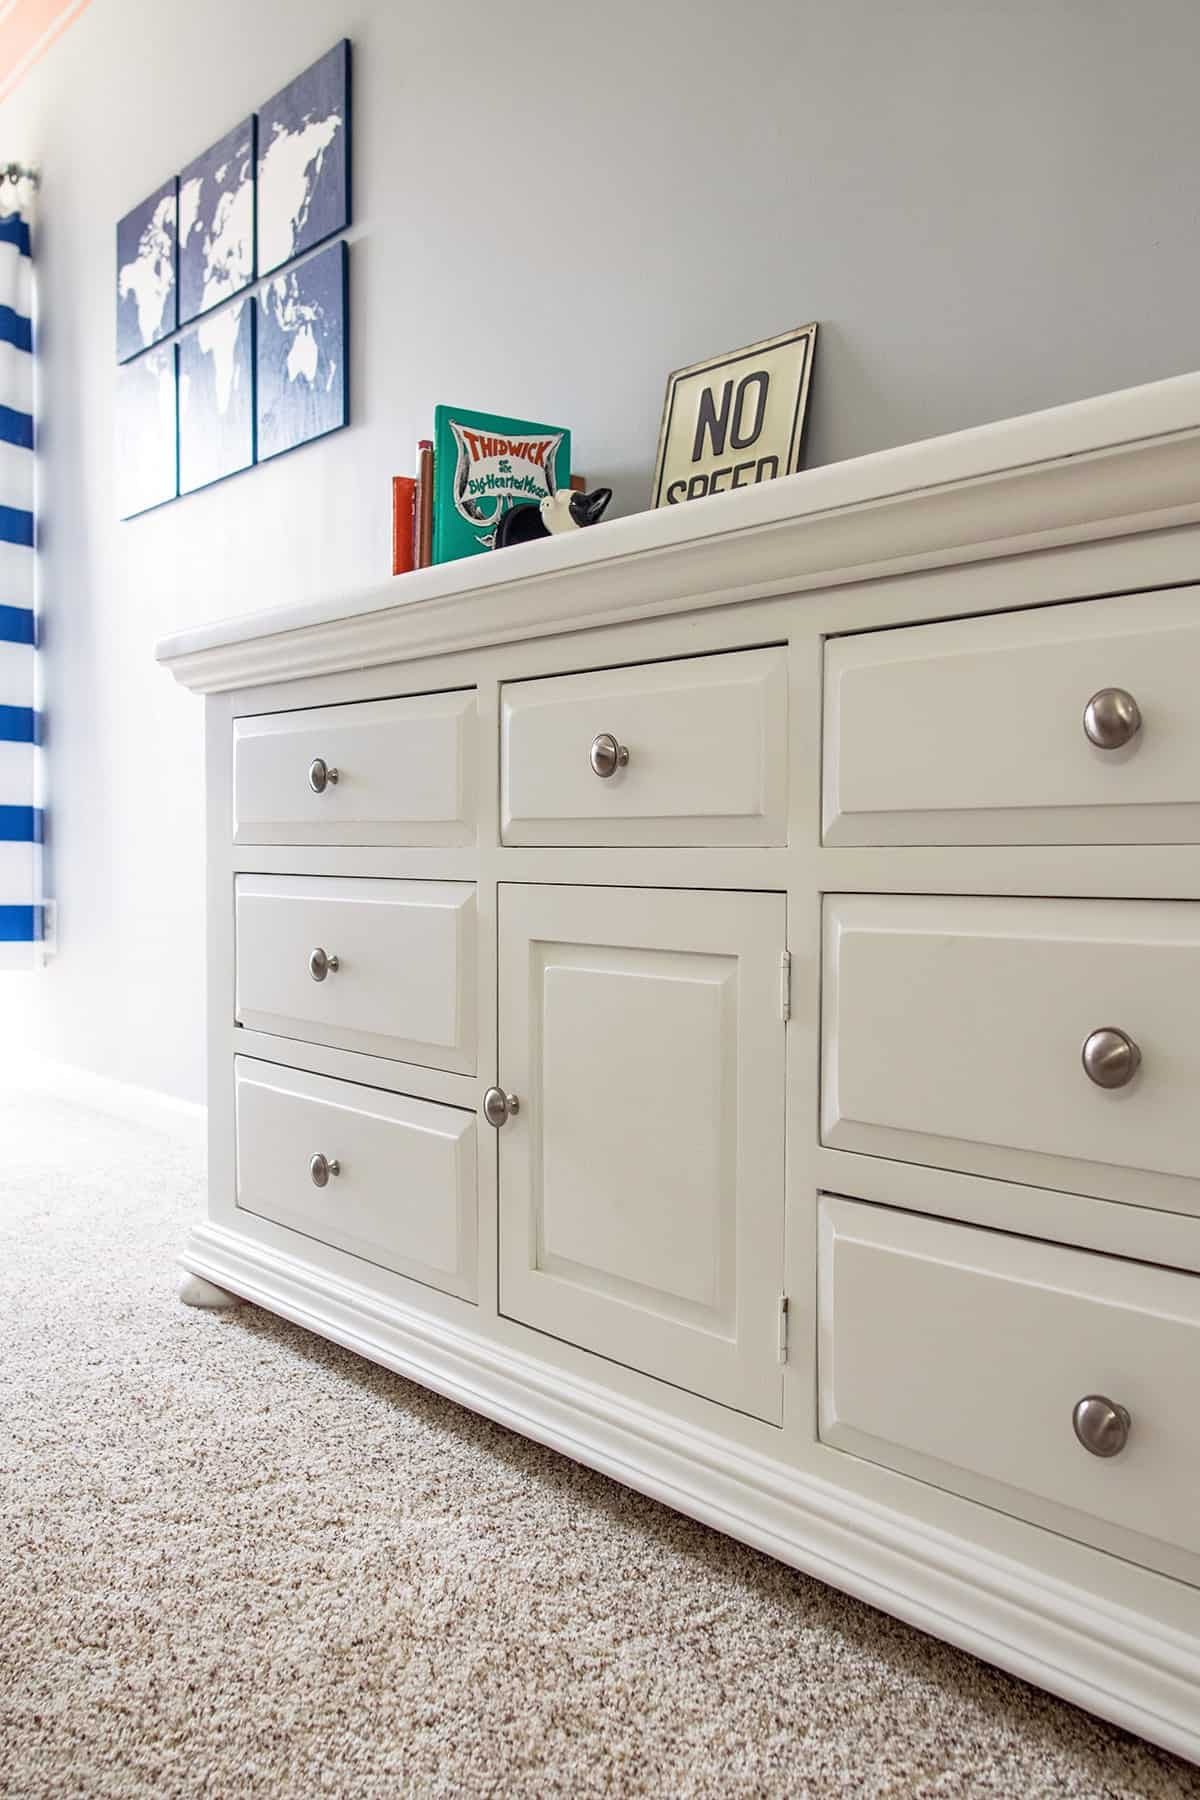 DIY Dresser Makeover from an old pine dresser. New Hardware and painted dresser with furniture paint to create a modern, updated dresser.